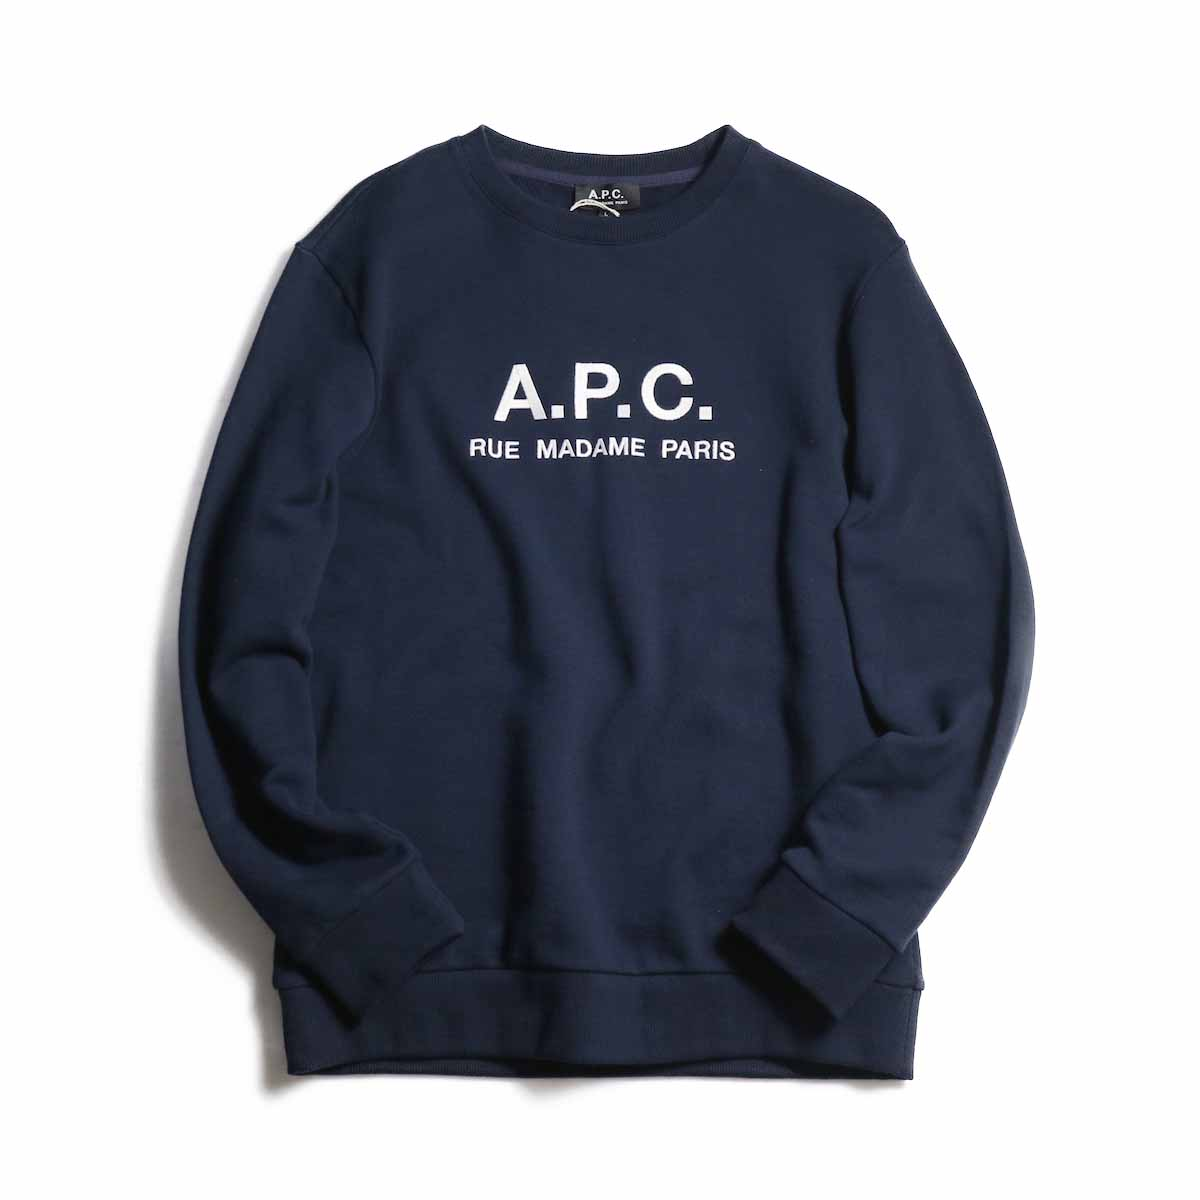 A.P.C. / Jeremie Sweat Shirt RUE MADAME PARIS -Navy